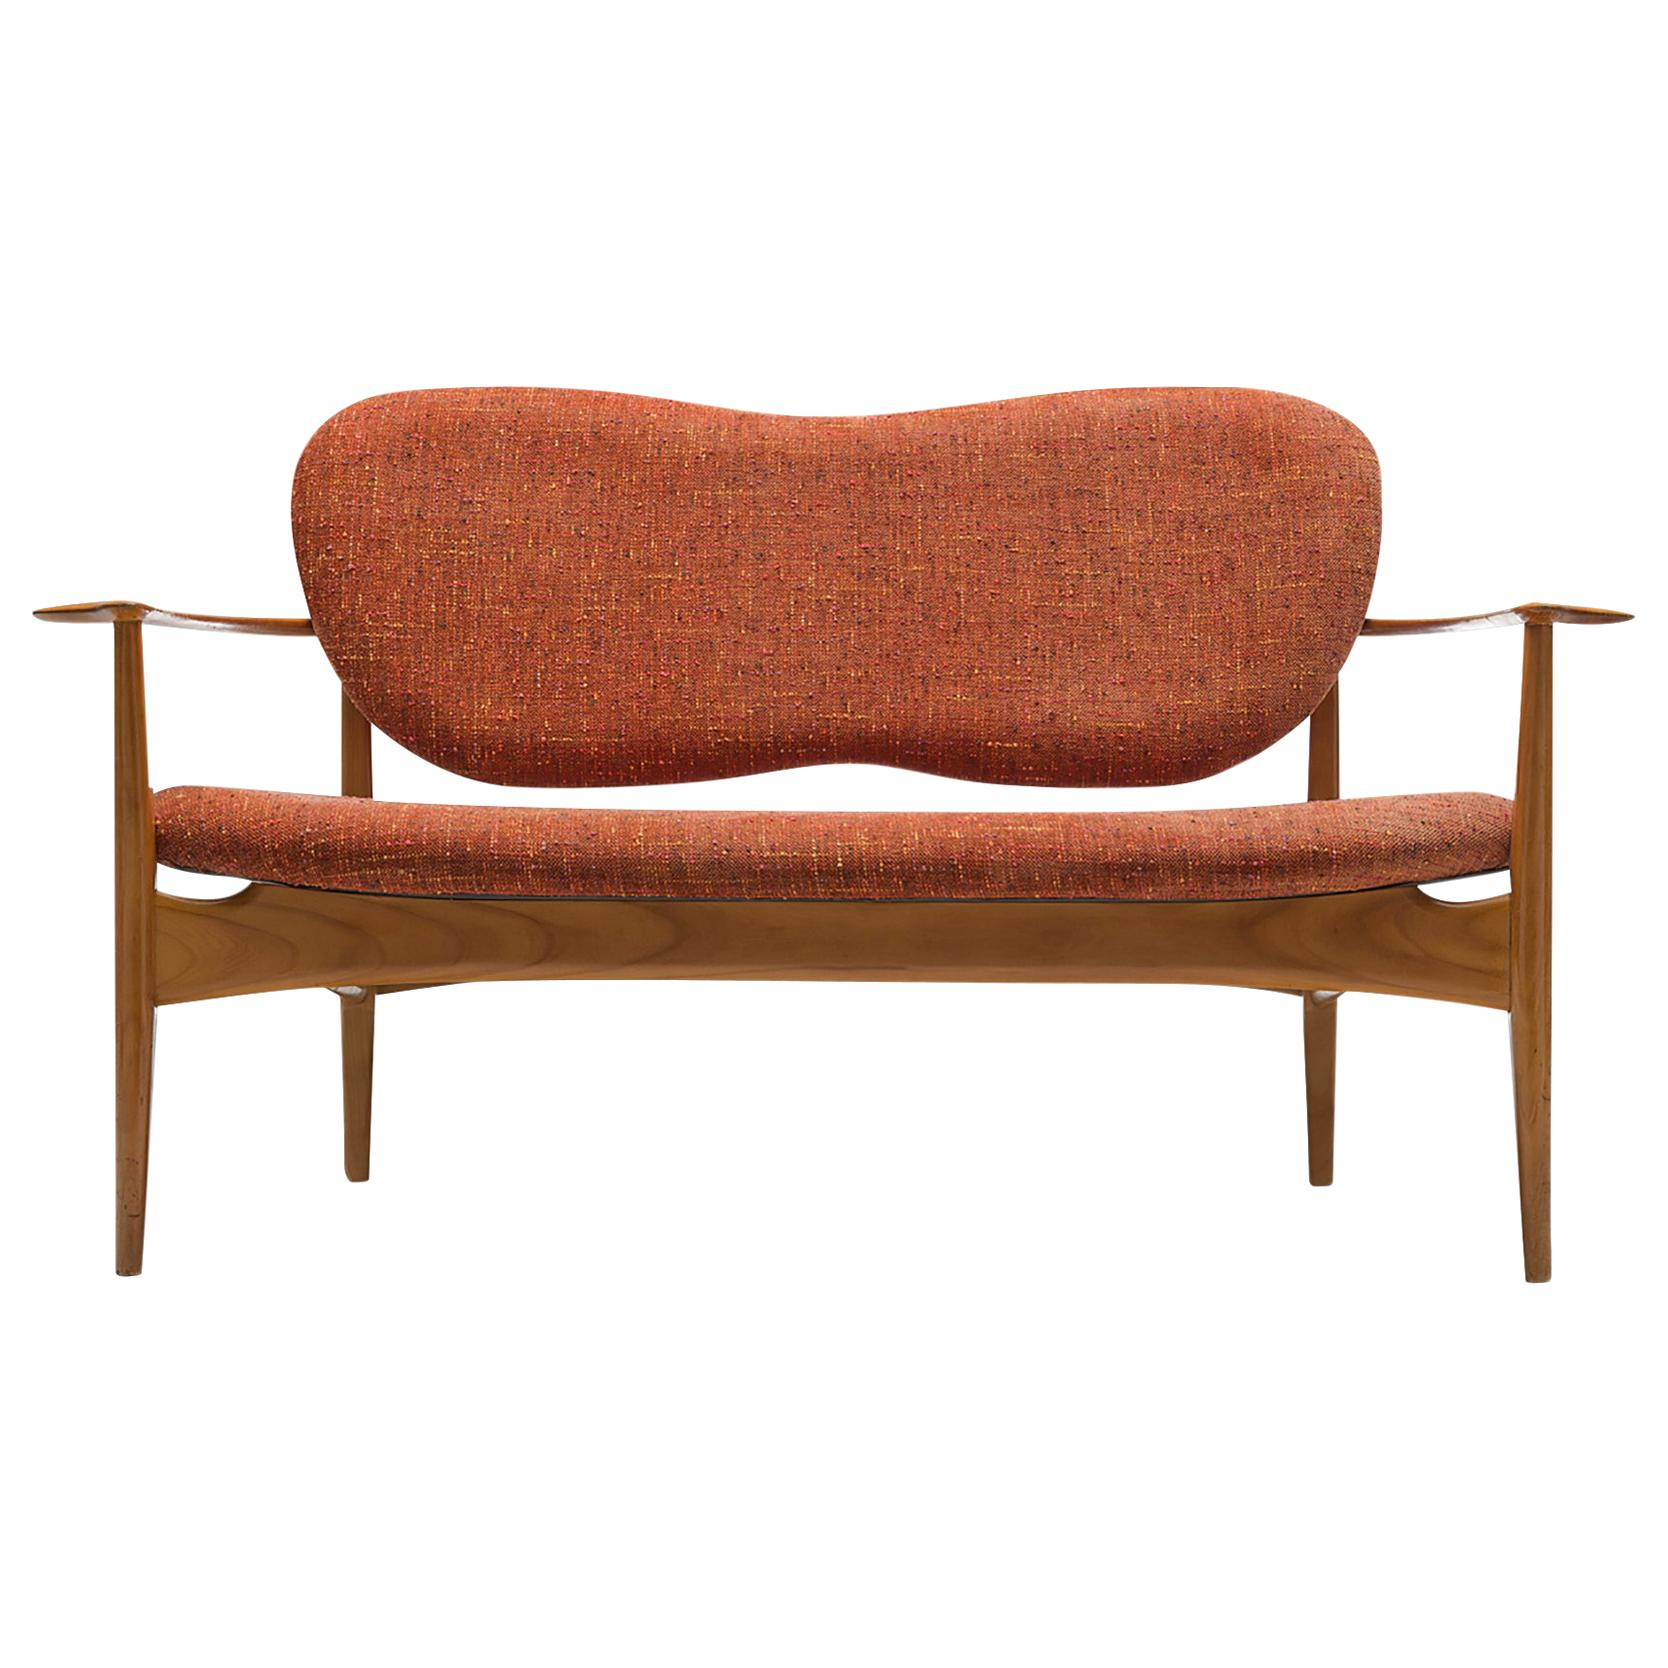 Danish Sofa with Wing-Shaped Back